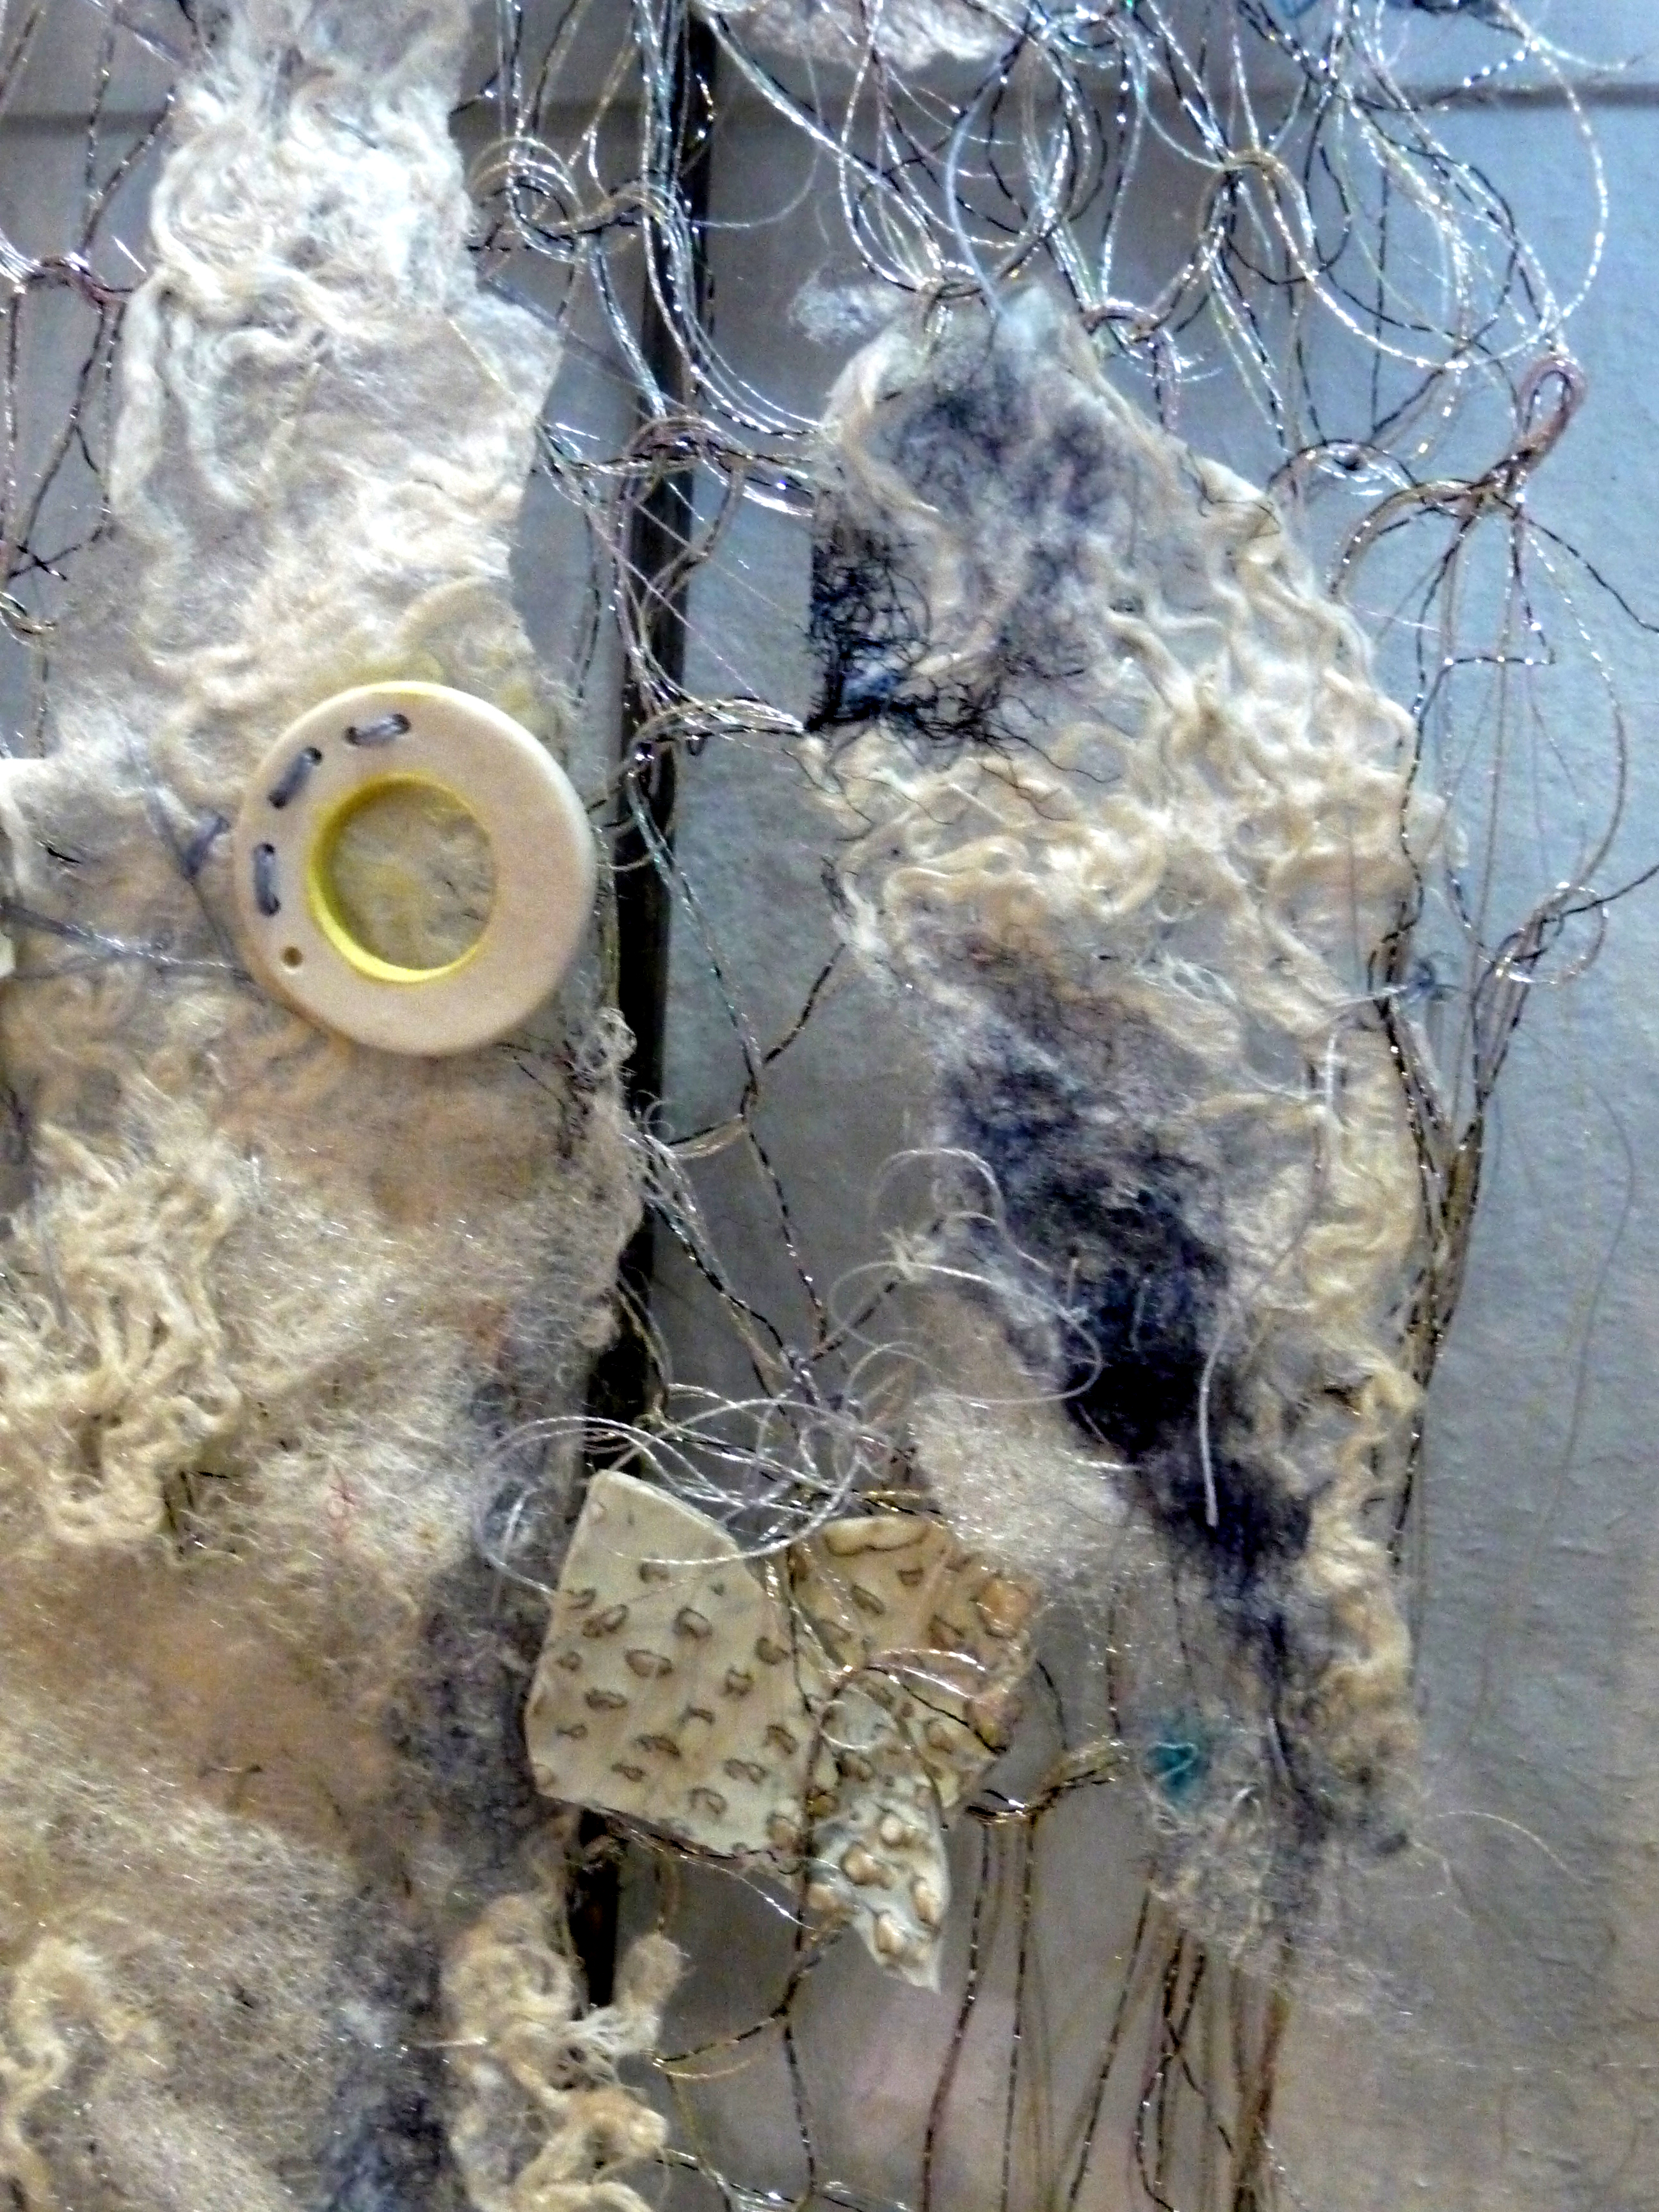 MOON LANDSCAPE(detail) by Vera Morgan, knitted wire, ceramics and felt